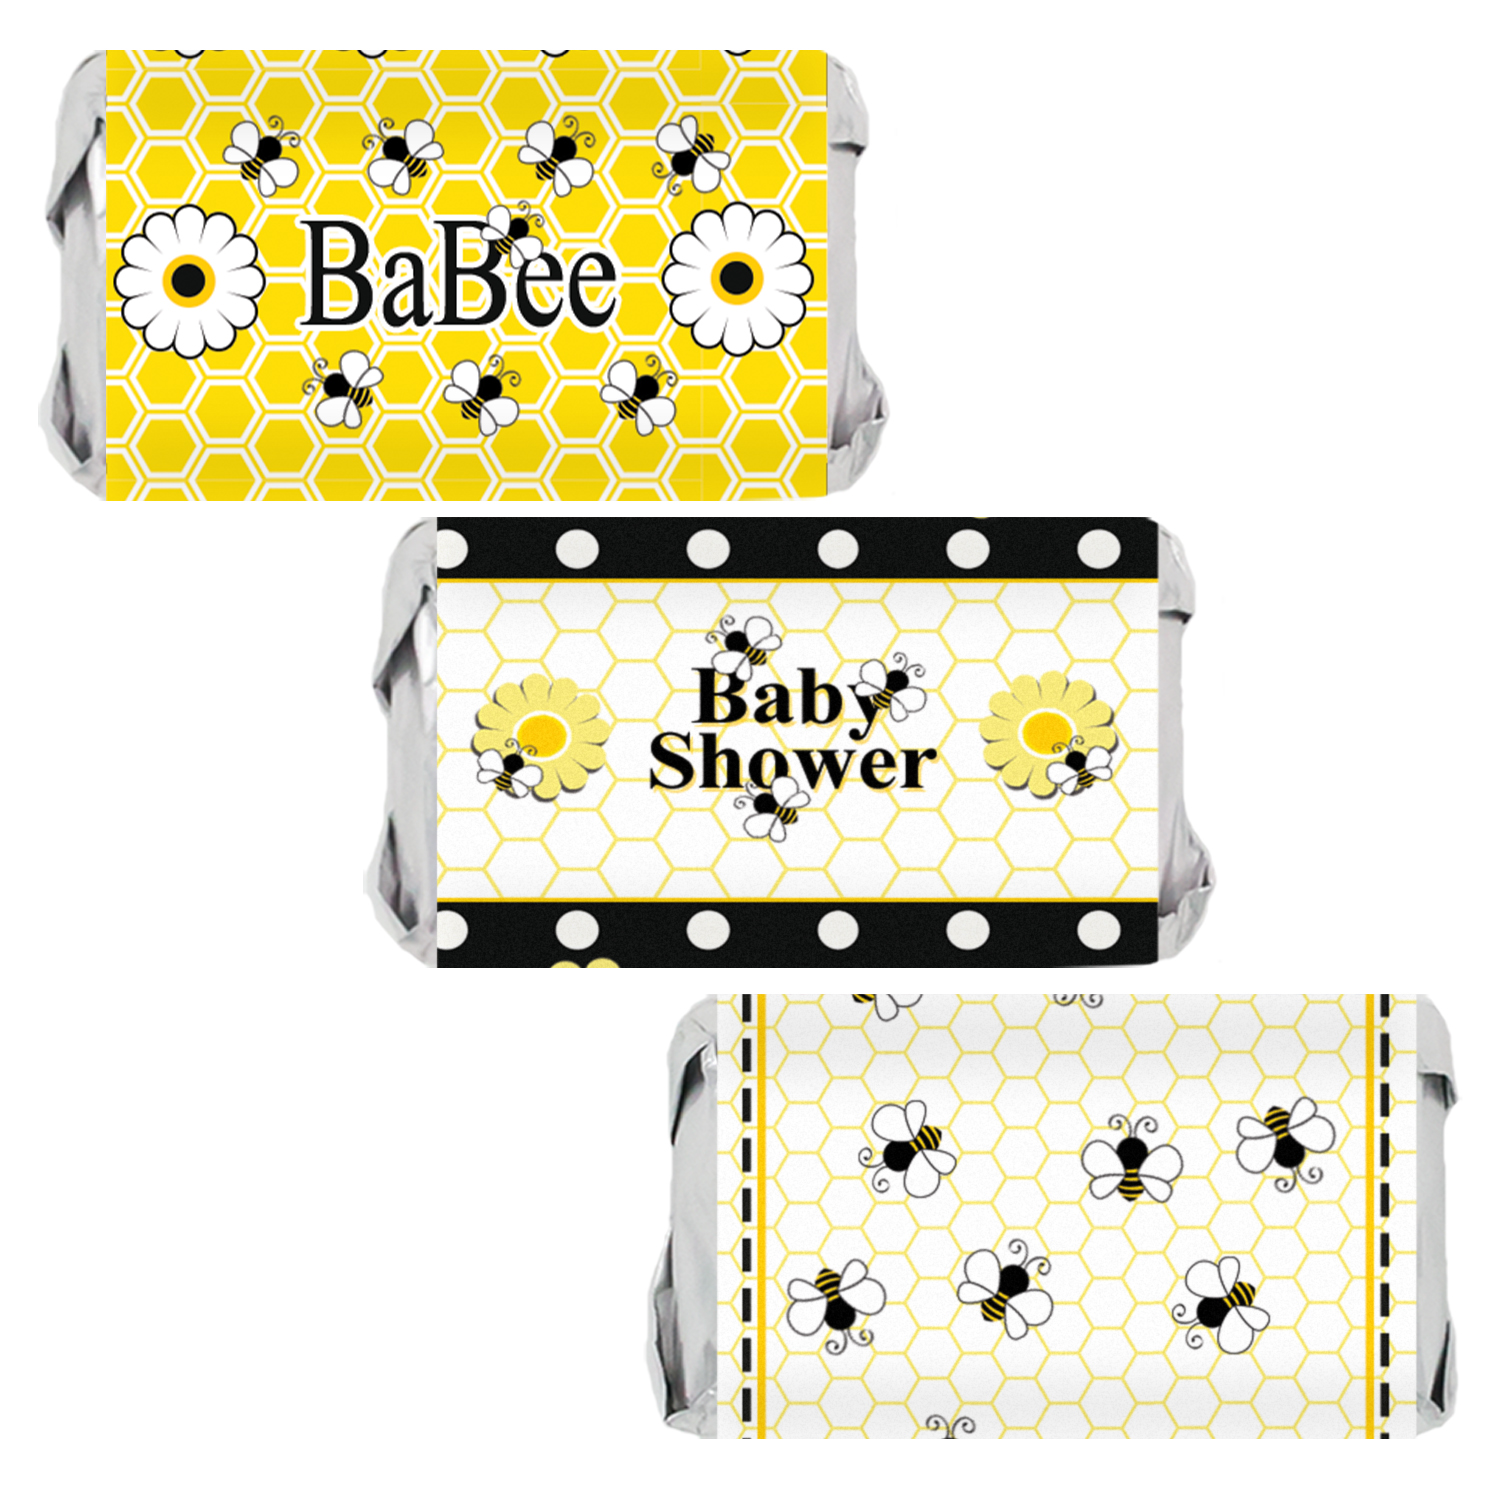 Bumble Bee Baby Shower Party Favor Stickers for Hershey's Miniatures Bars (Set of 54)